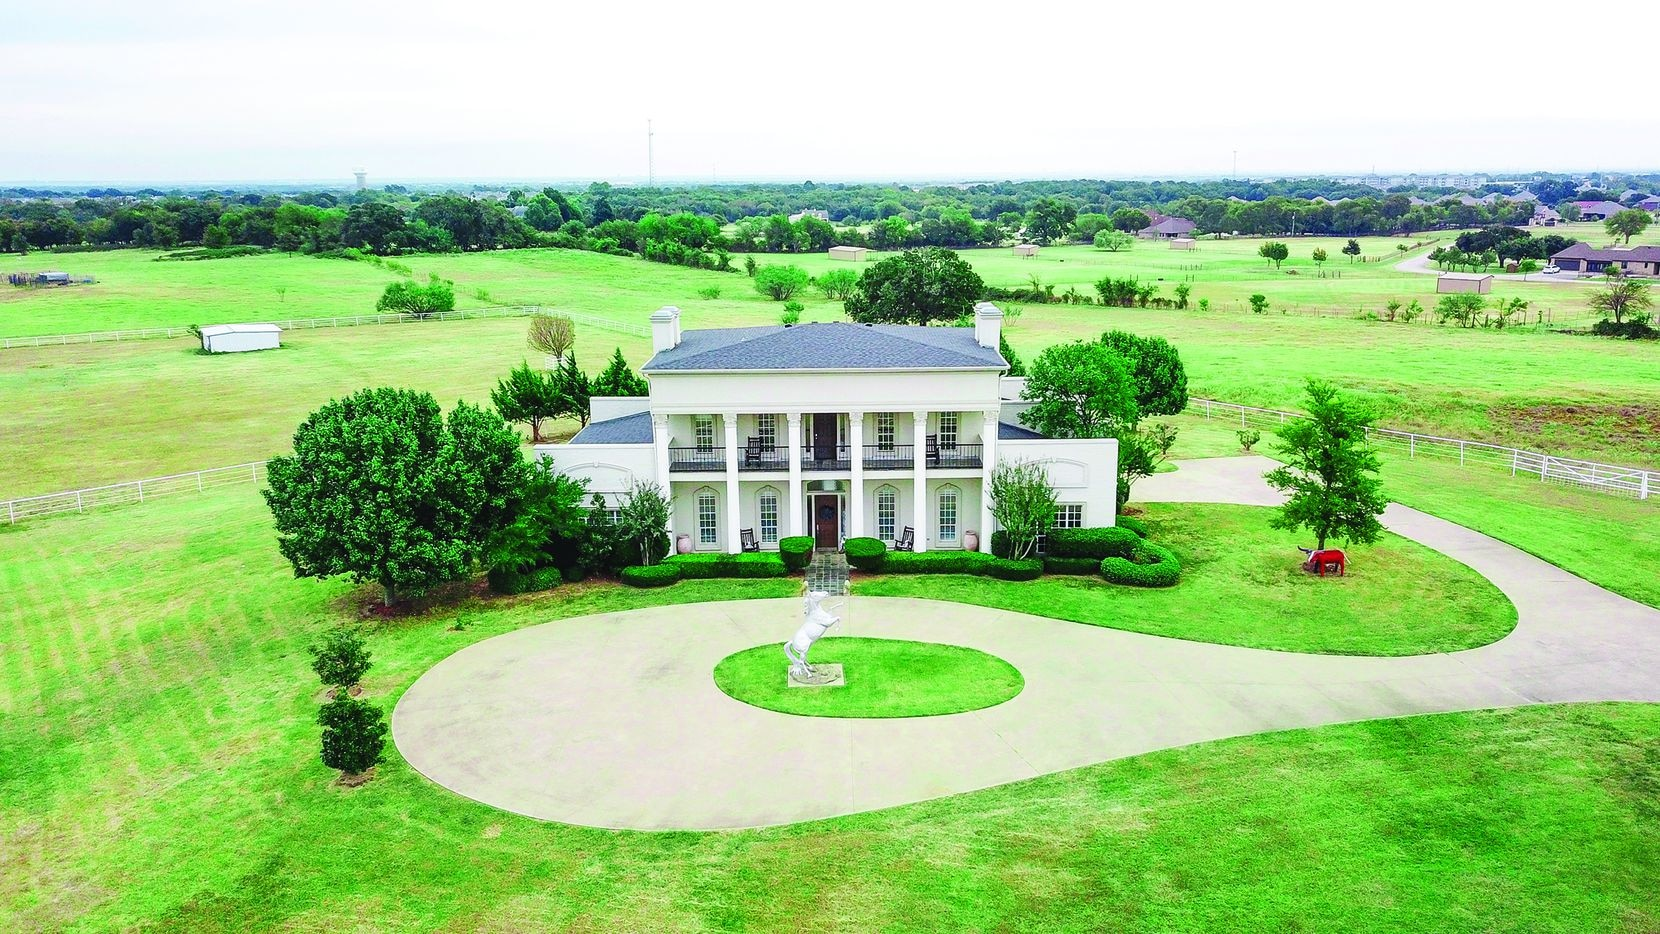 Offered at $1.7 million, the 20-plus-acre ranch at 5500 FM424 in Cross Roads features a main house, pastures, barns, a stable and riding arena.